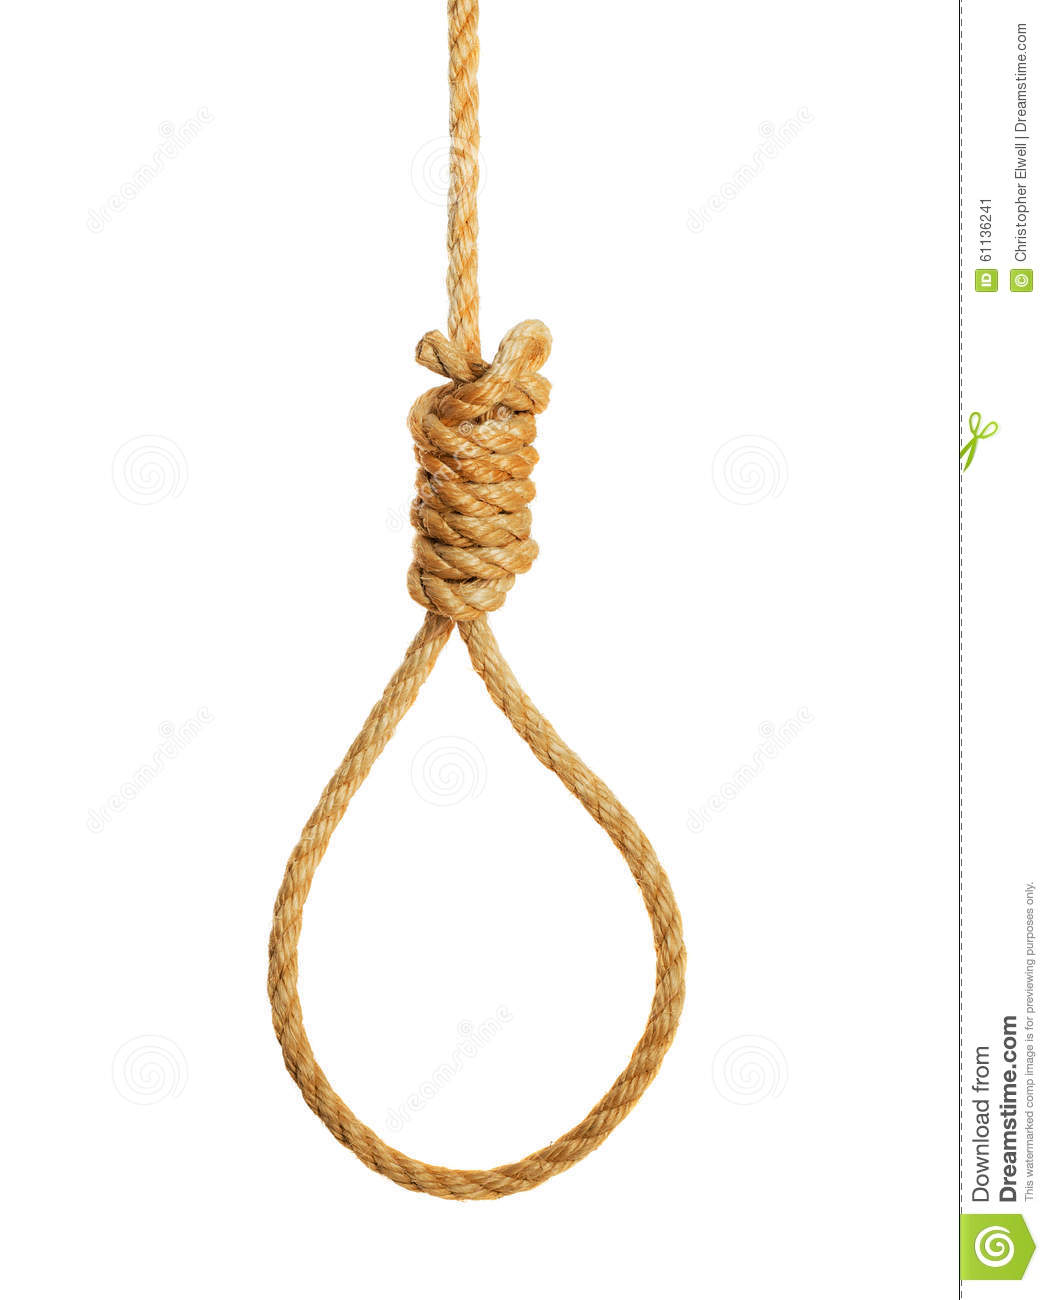 Hangmans Noose Stock Photo - Image: 61136241